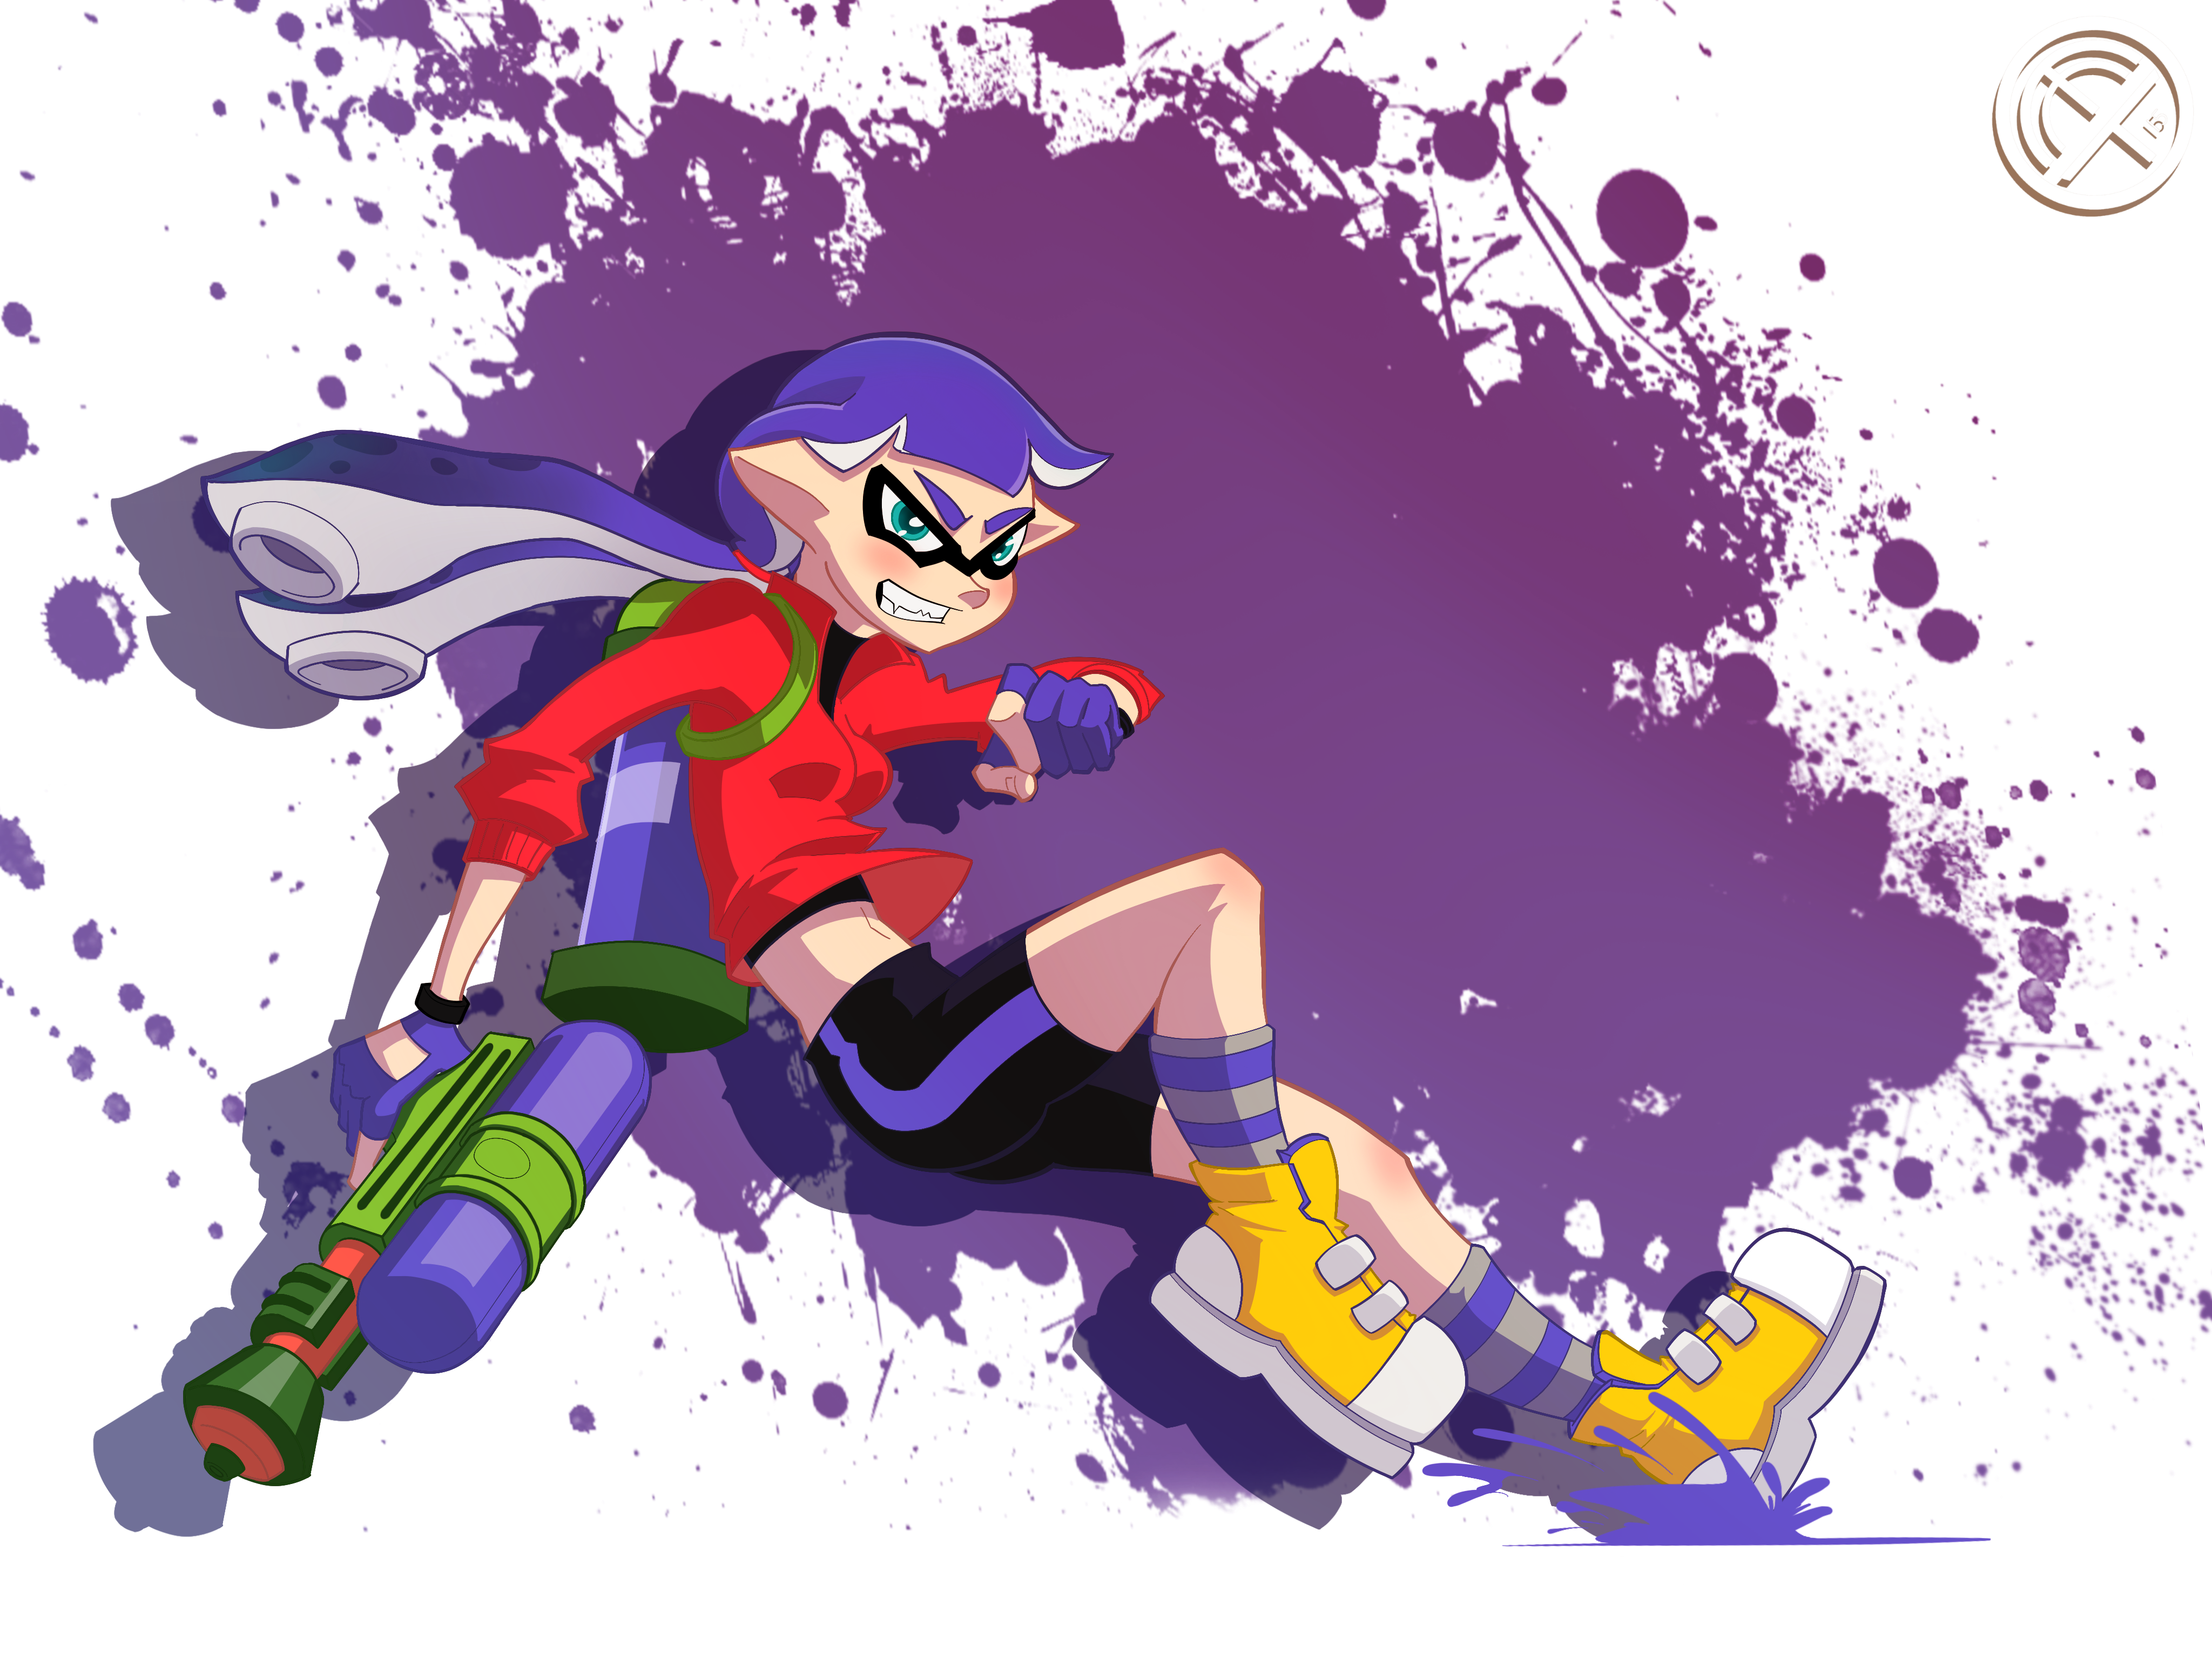 splatoon fanart inkling who needs a name by theshinyguy on deviantart